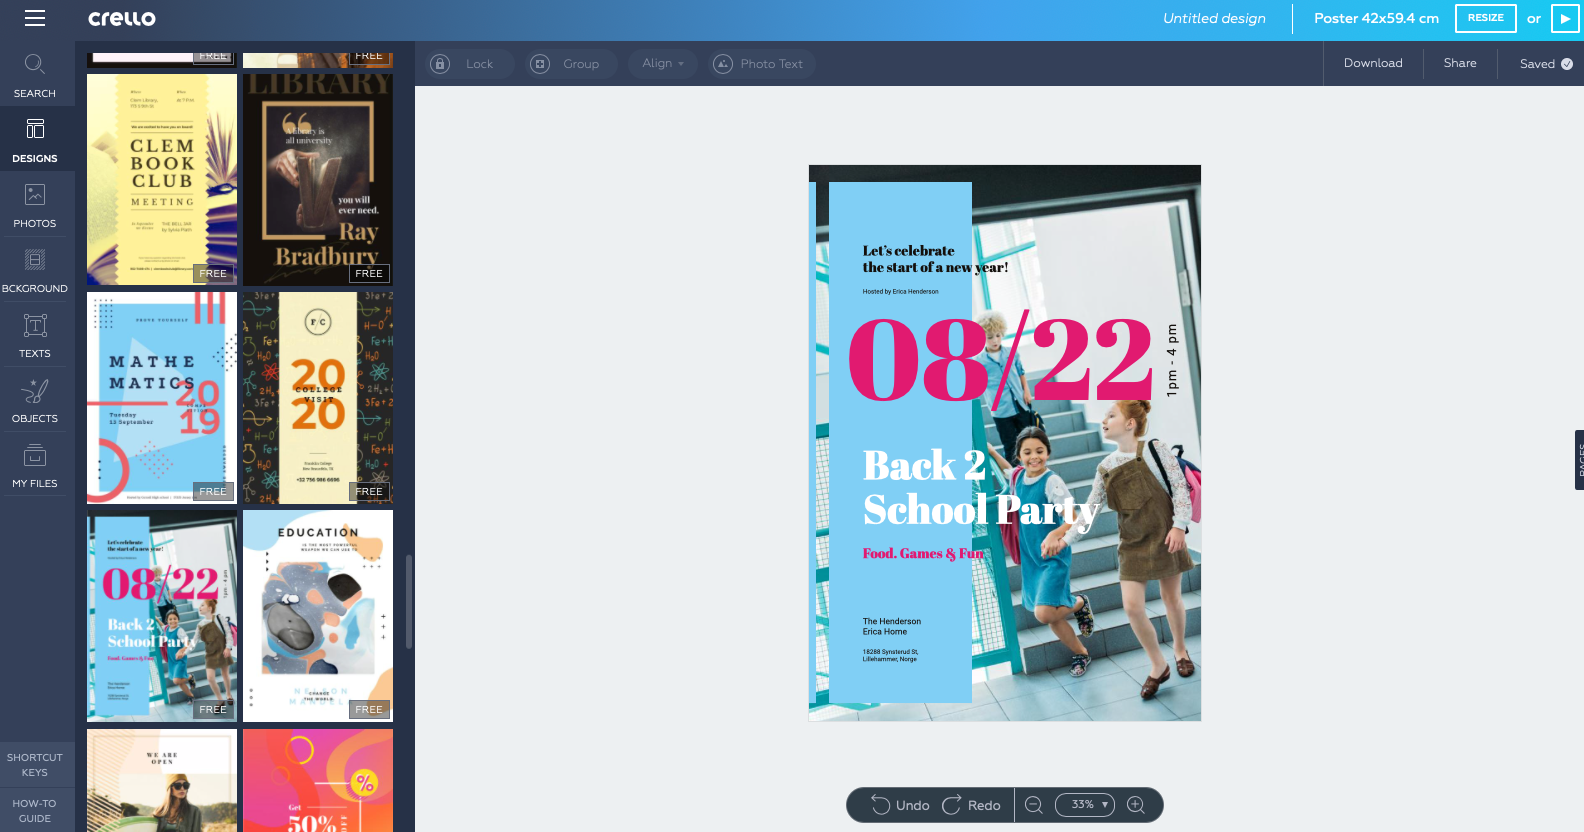 Screenshot of Crello Free Online Poster Making Tool